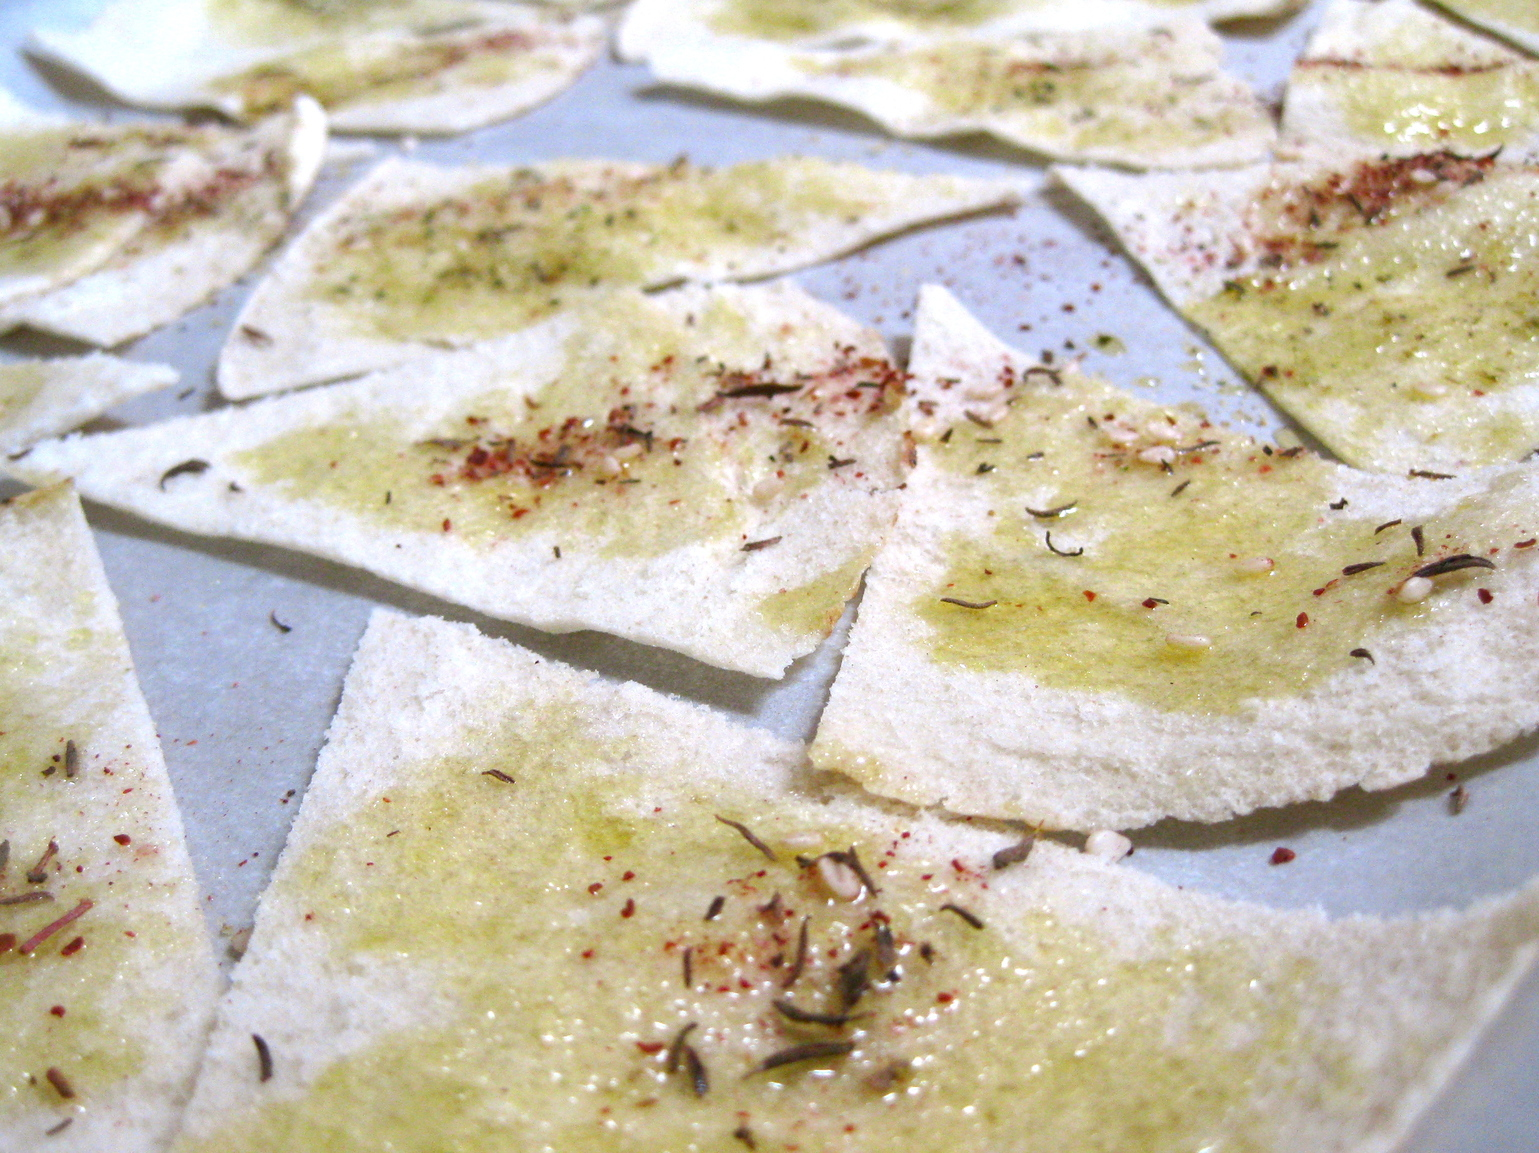 ... za atar pita chips with yogurt dip rezept yummly zis for za atar